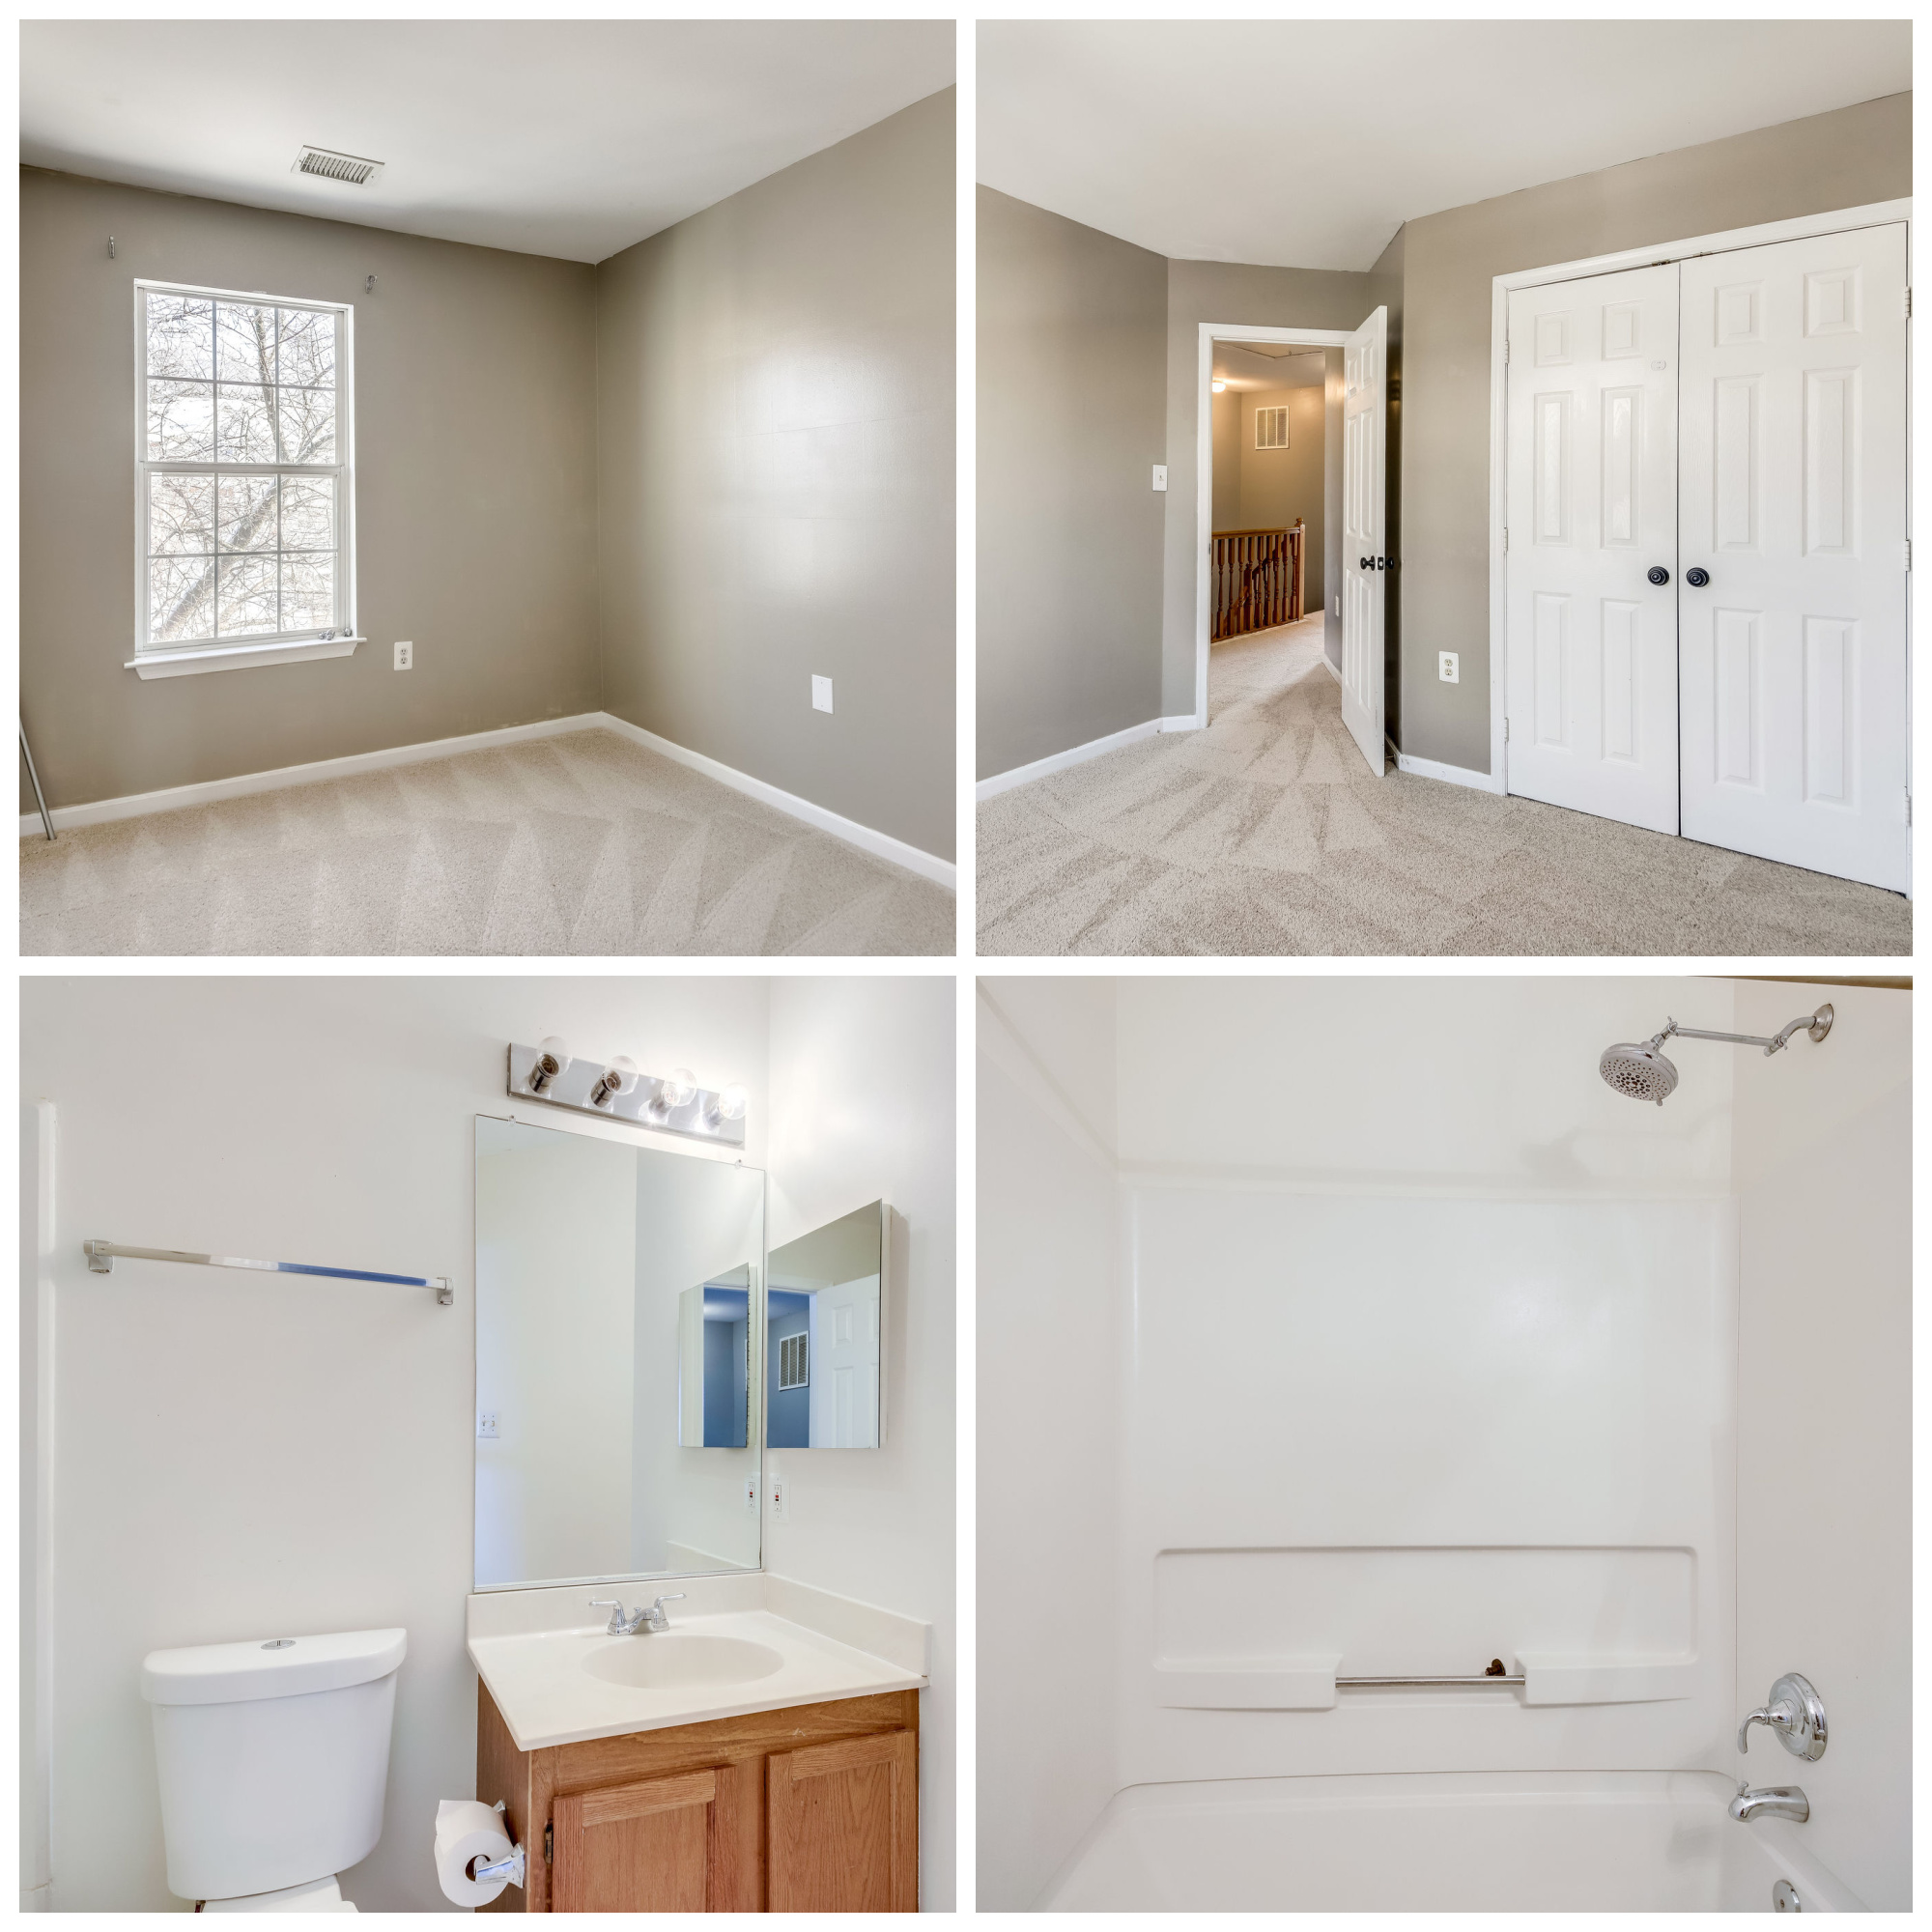 405 Breckinridge Sq SE, Leesburg- Additional Bedrooms and Bath